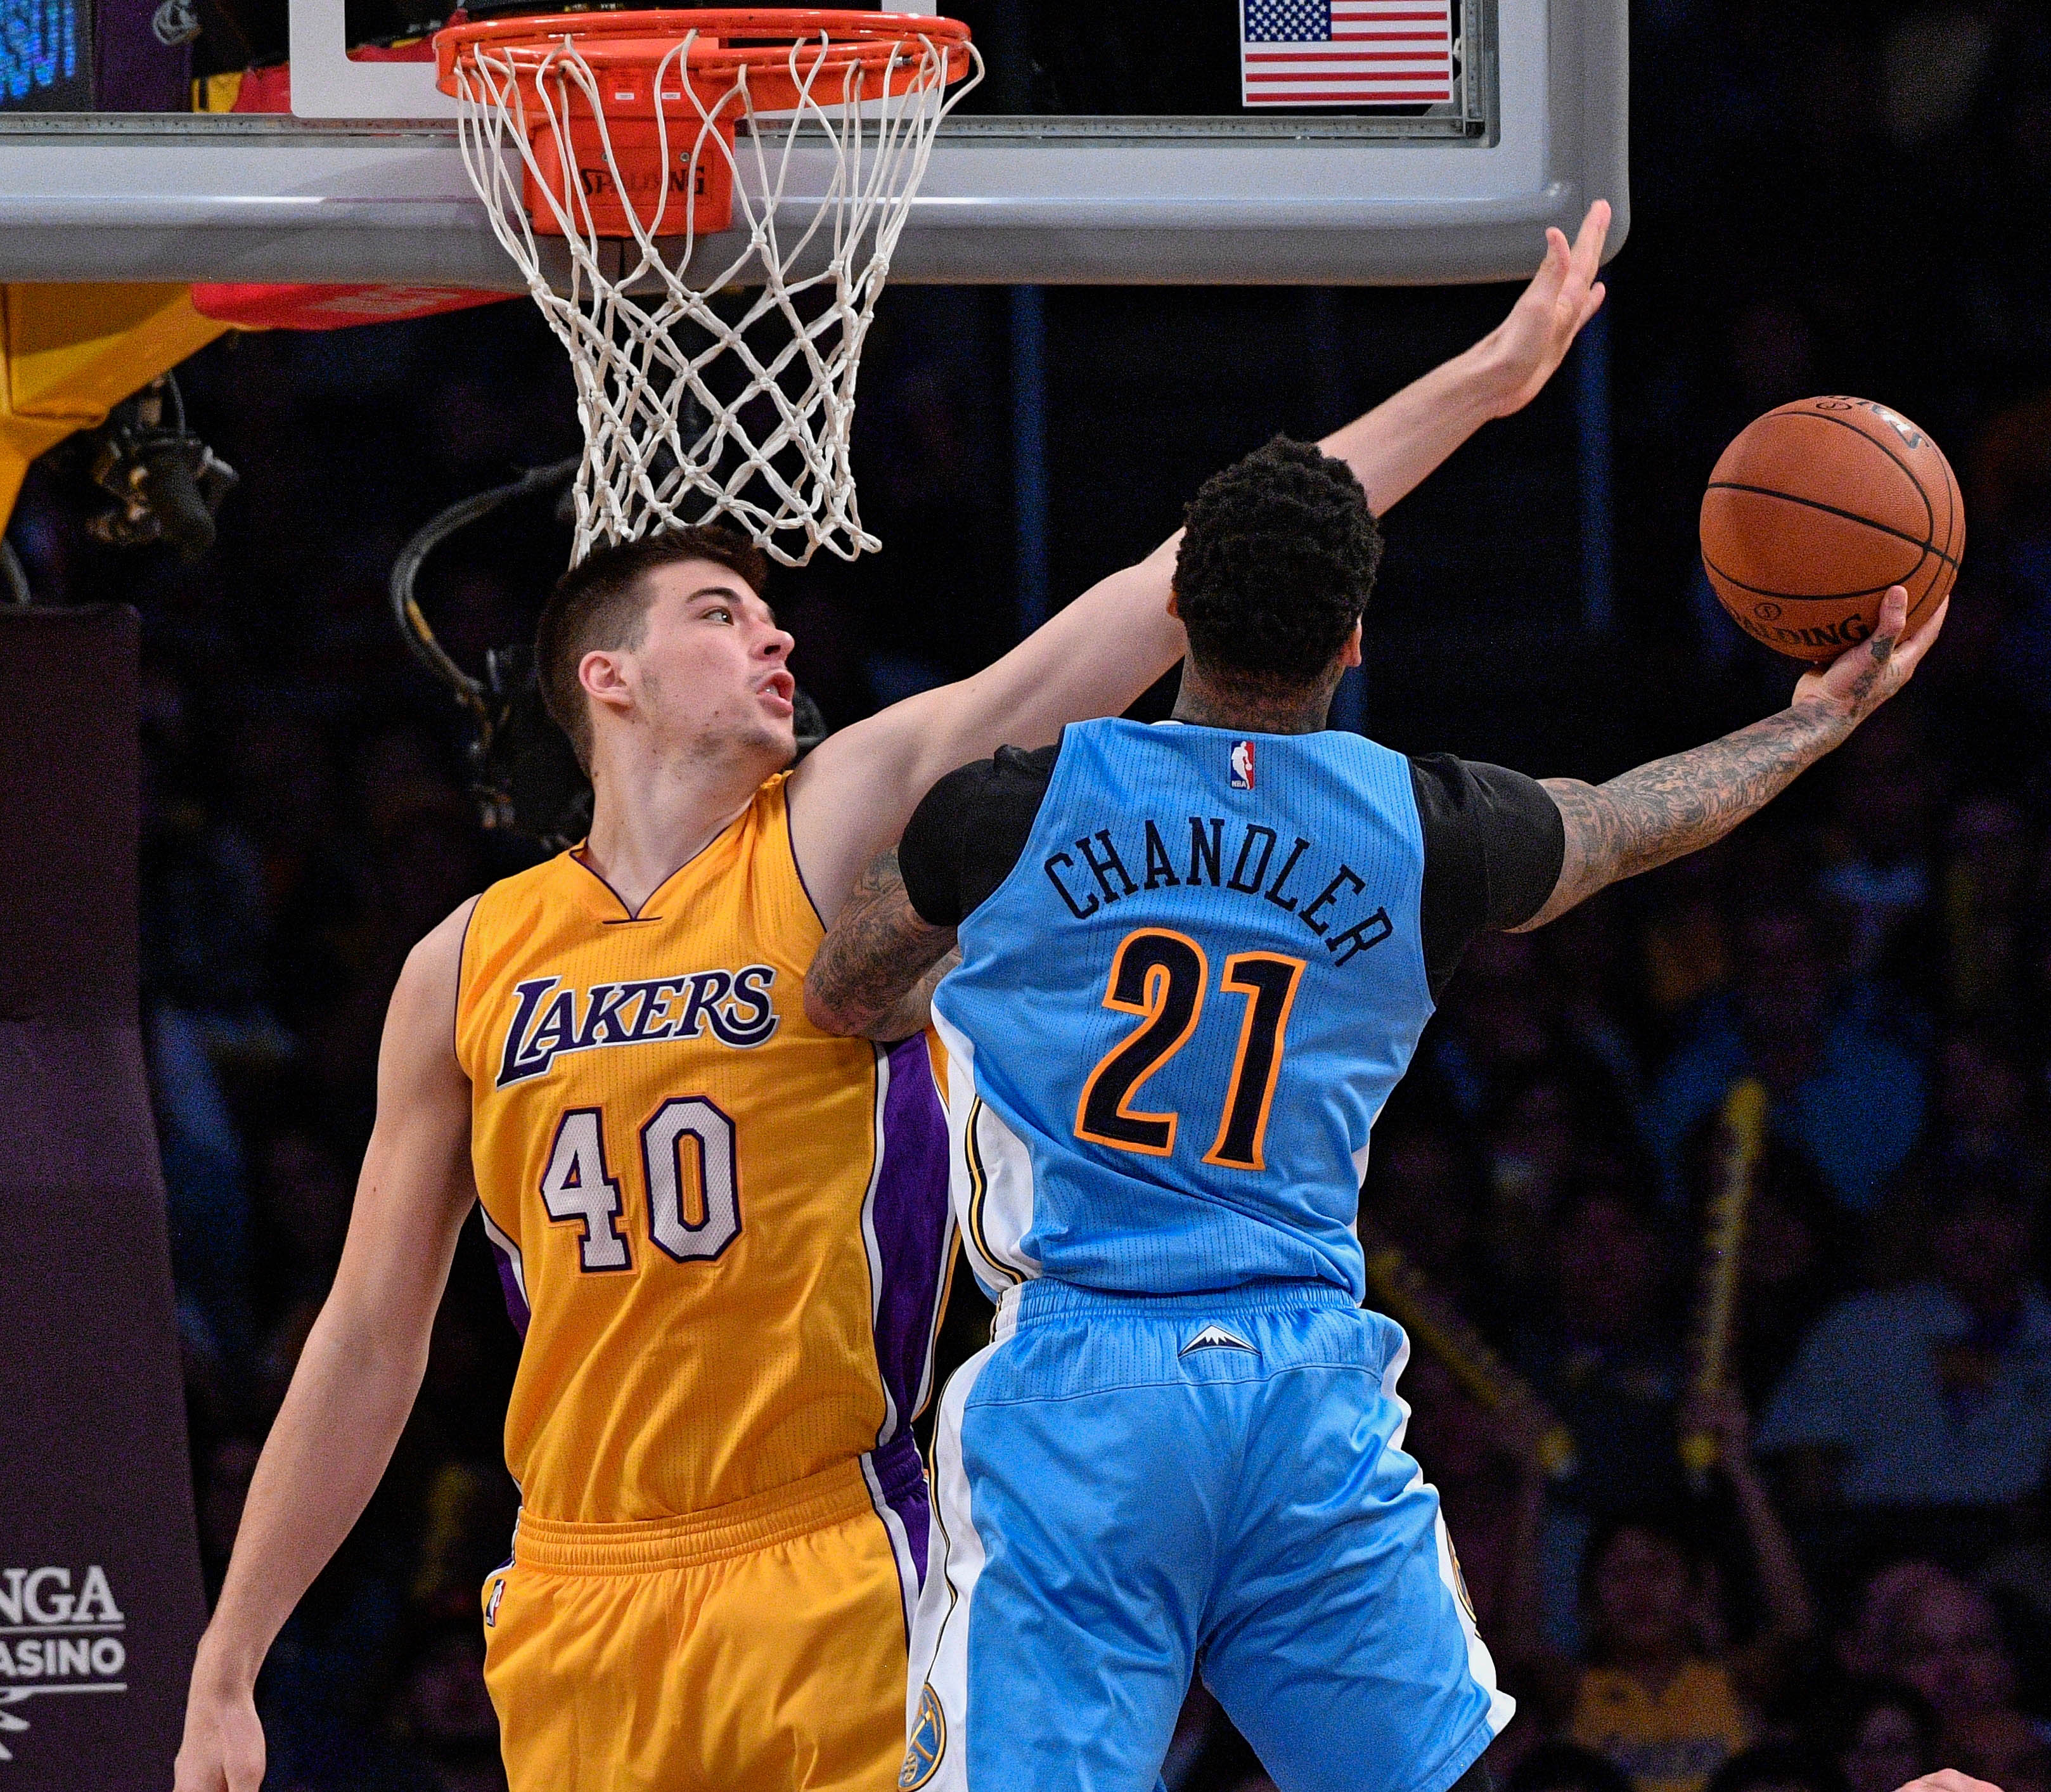 Nuggets Clippers Highlights: Los Angeles Lakers 2016-17 Regular Season Team Awards